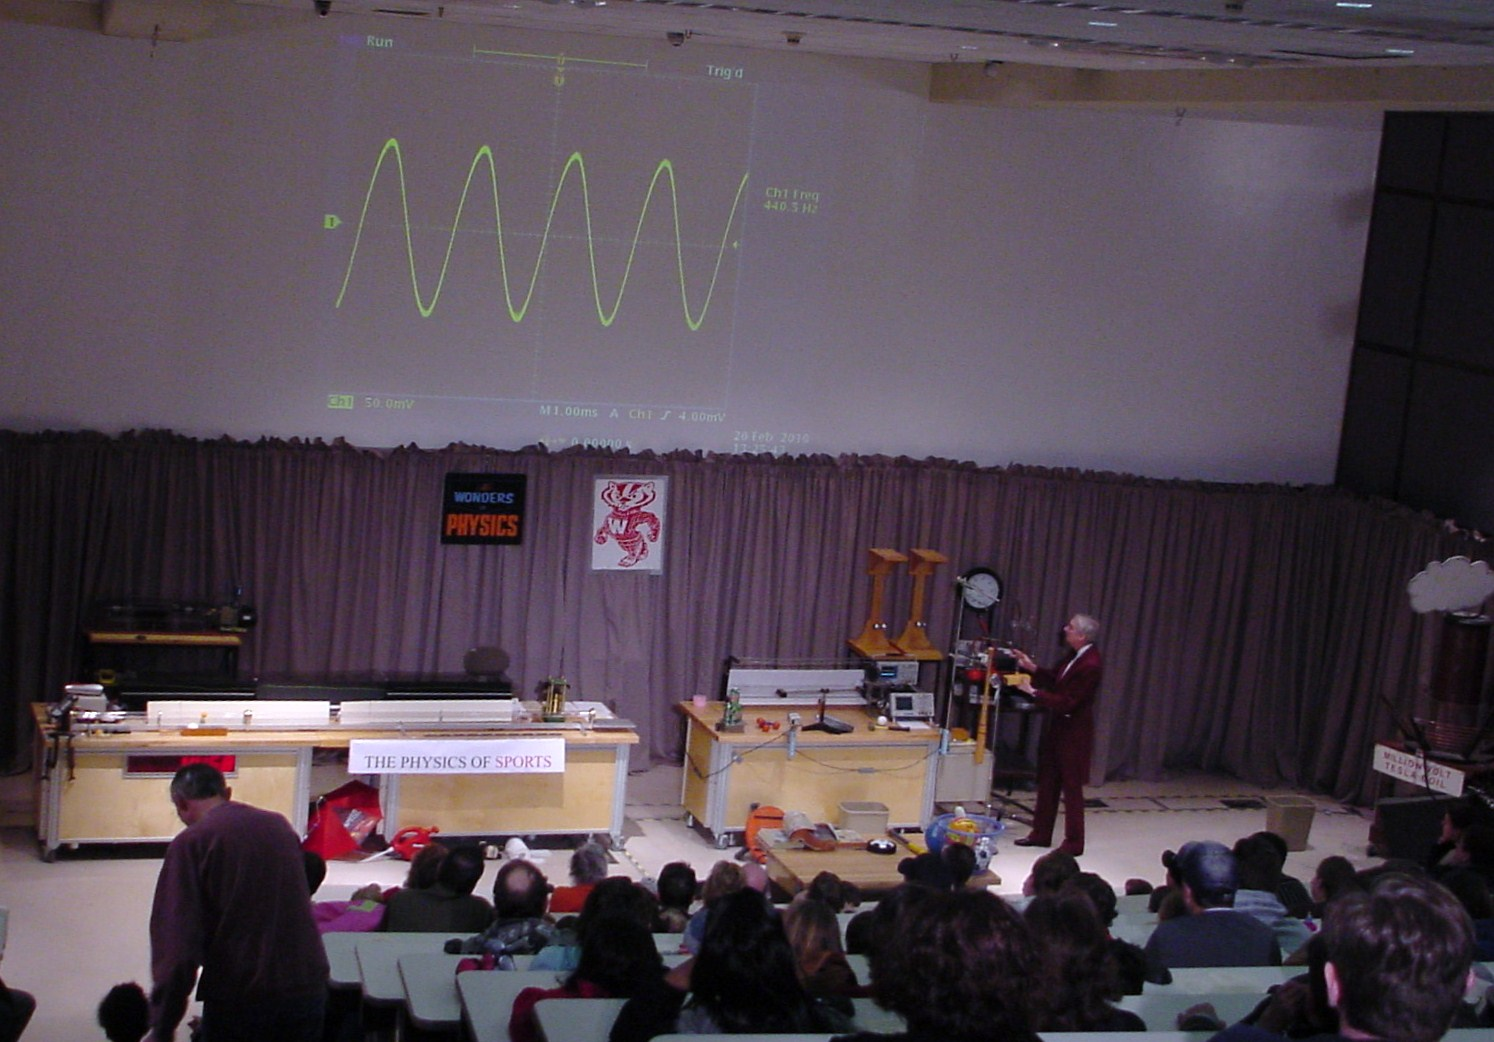 Man on stage presenting sound waves